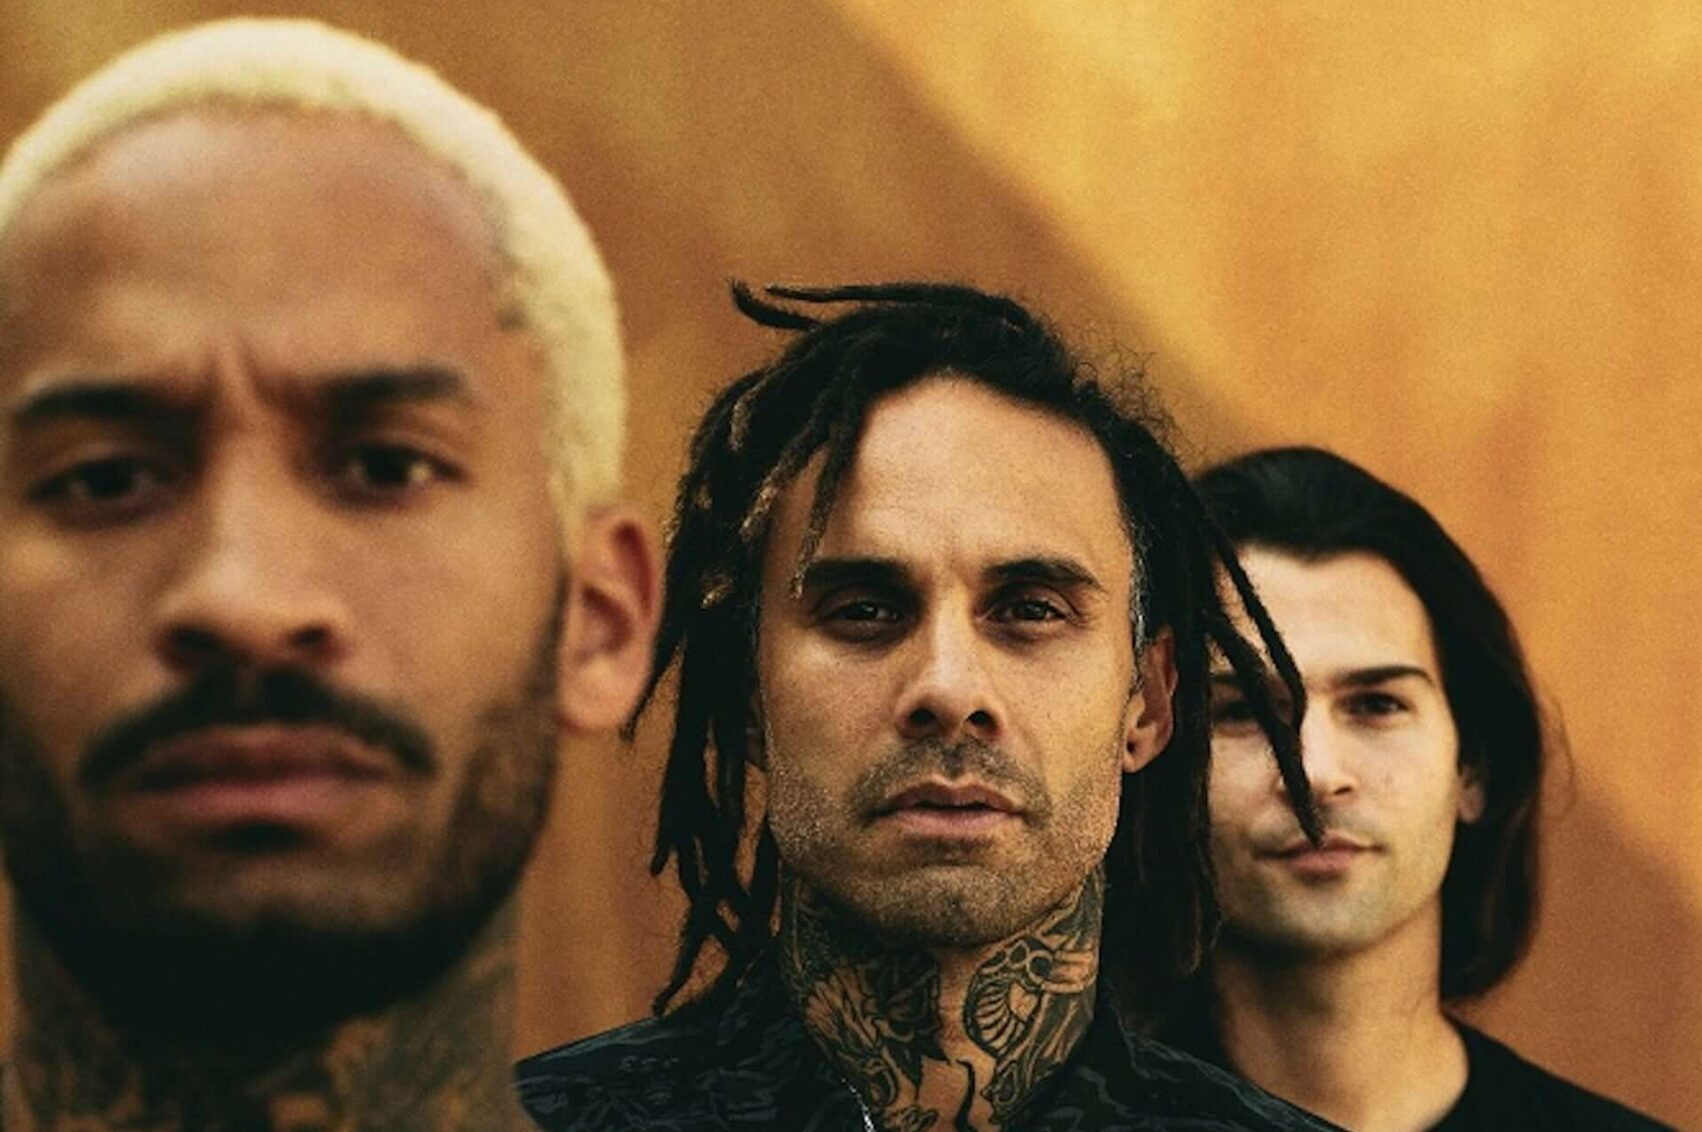 """FEVER 333 RELEASE MOVING MUSIC VIDEO FOR """"LAST TIME"""""""